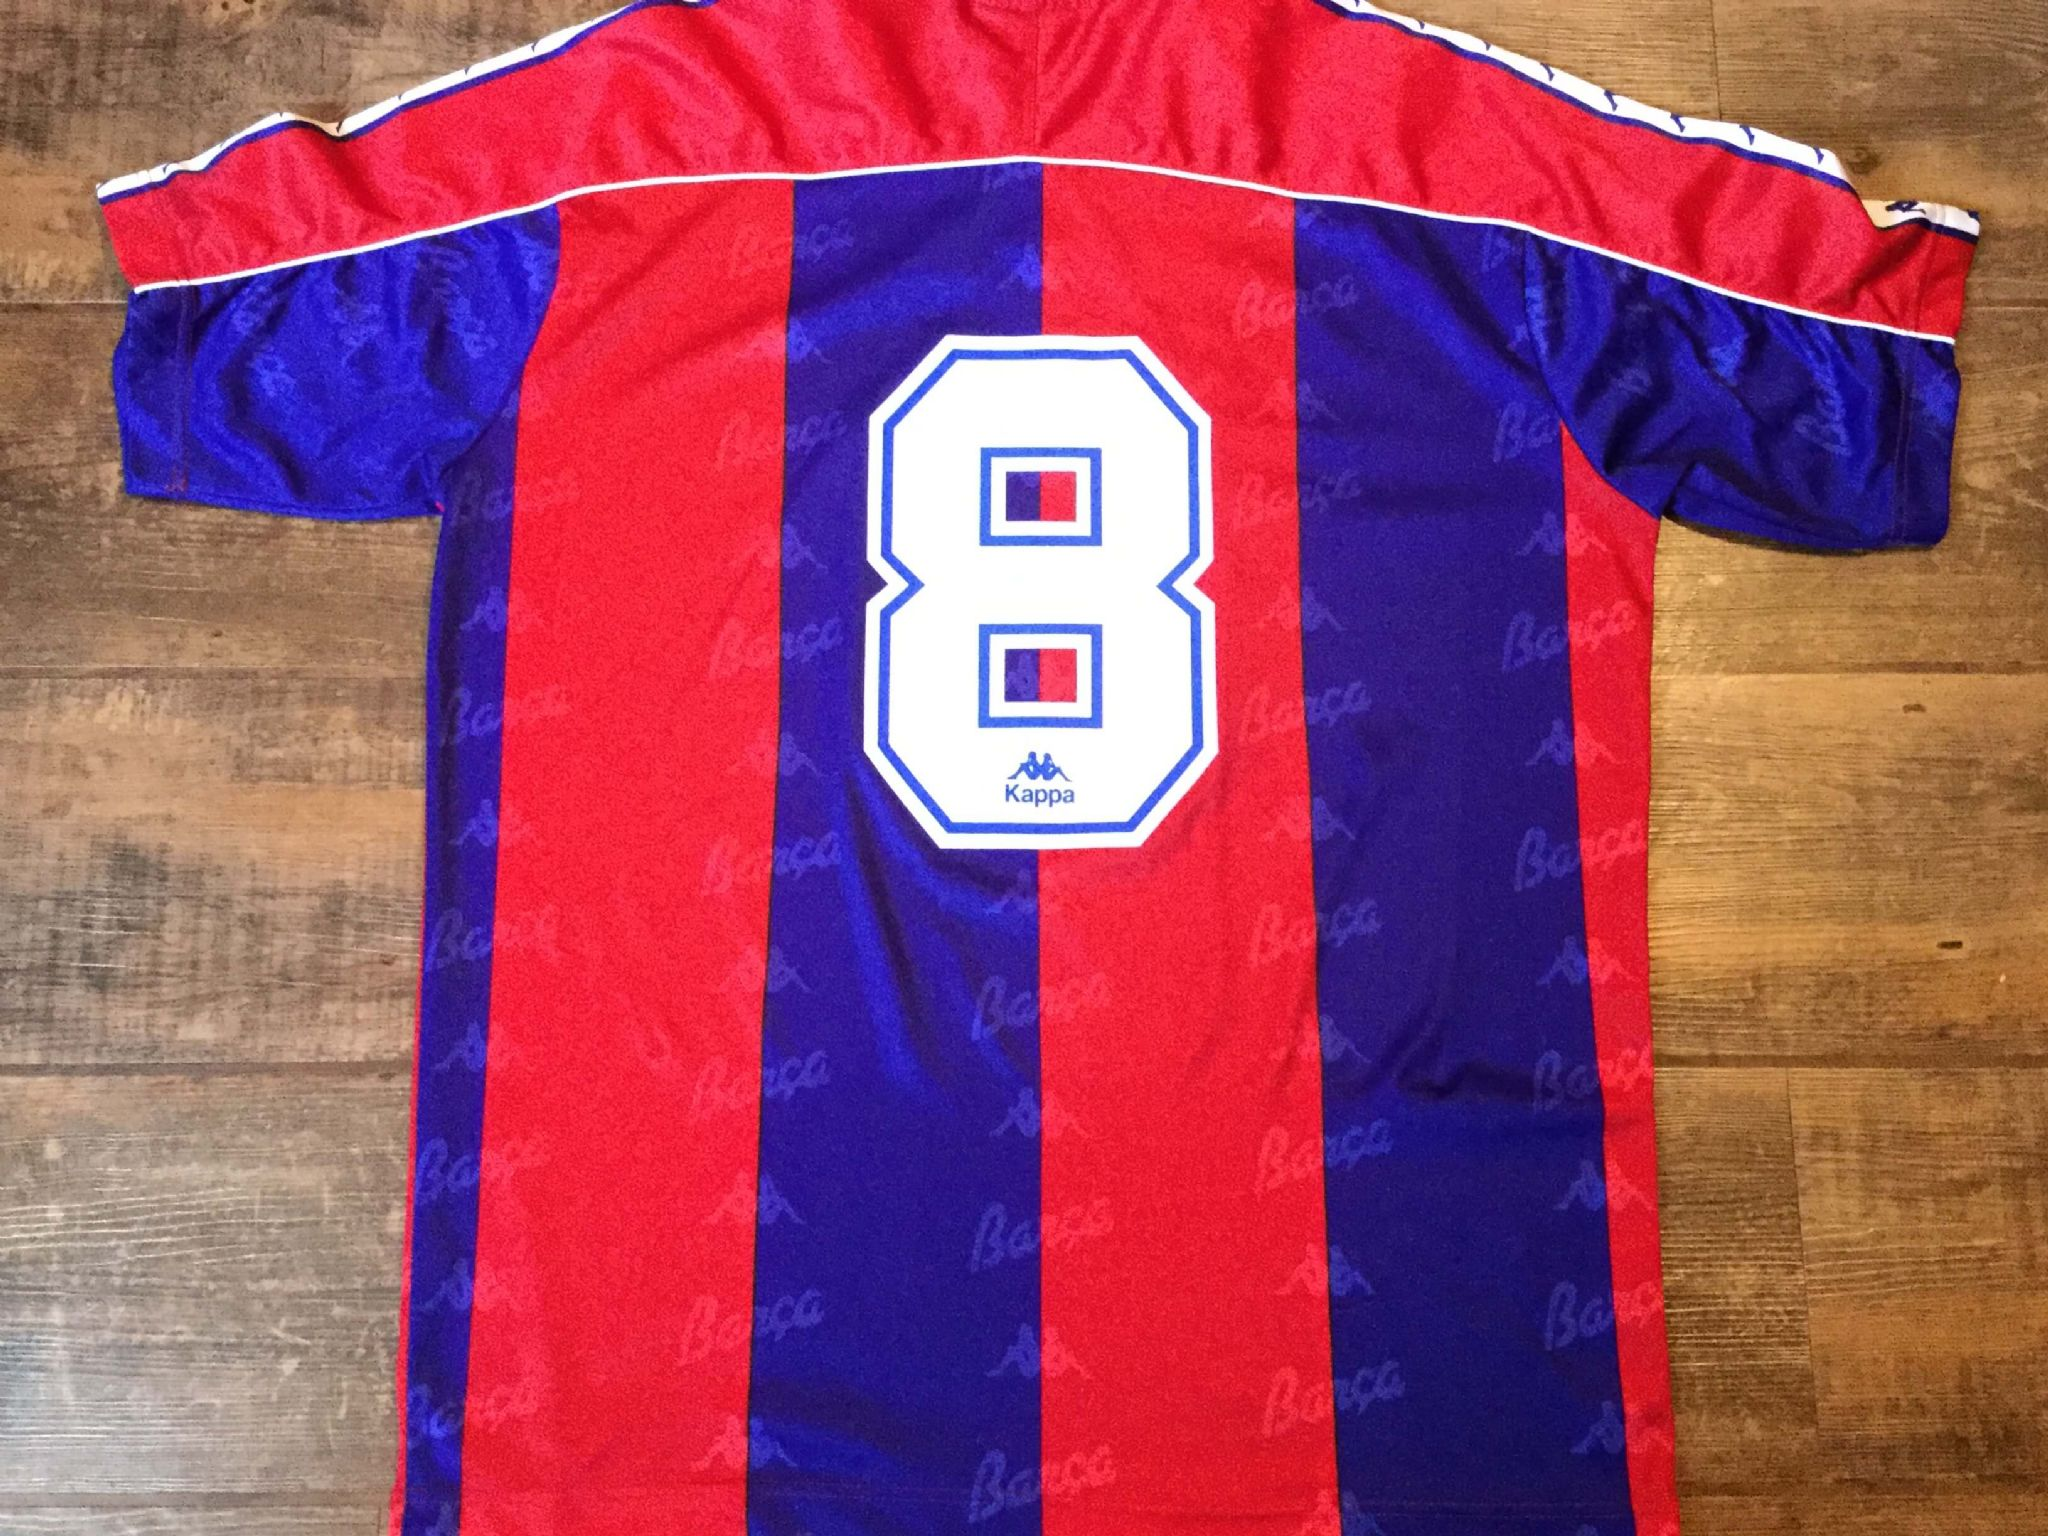 252b42283 1992 1995 Barcelona No 8 Stoichkov Home Football Shirt Adults XL. £99.99.  Out of stock